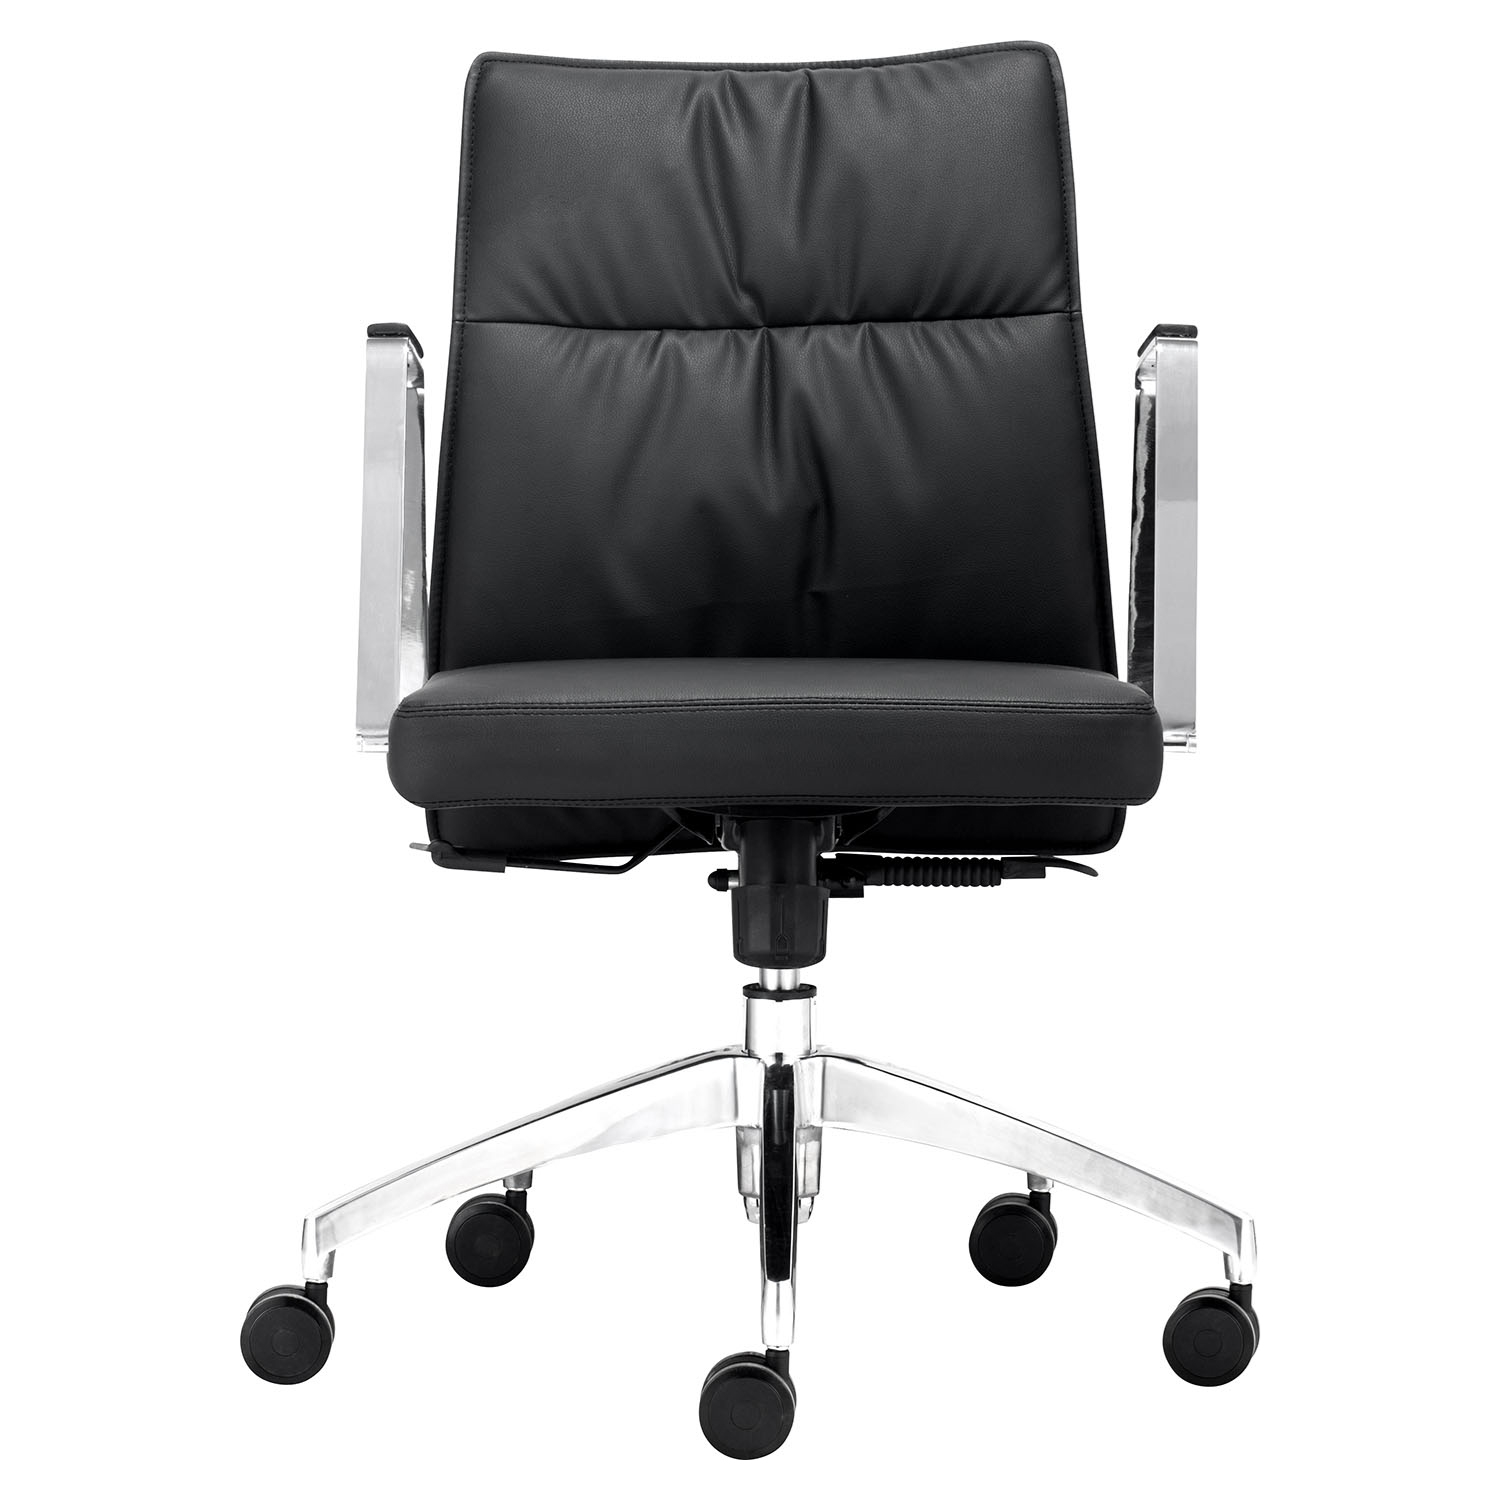 Dean Low Back Office Chair - Casters, Black